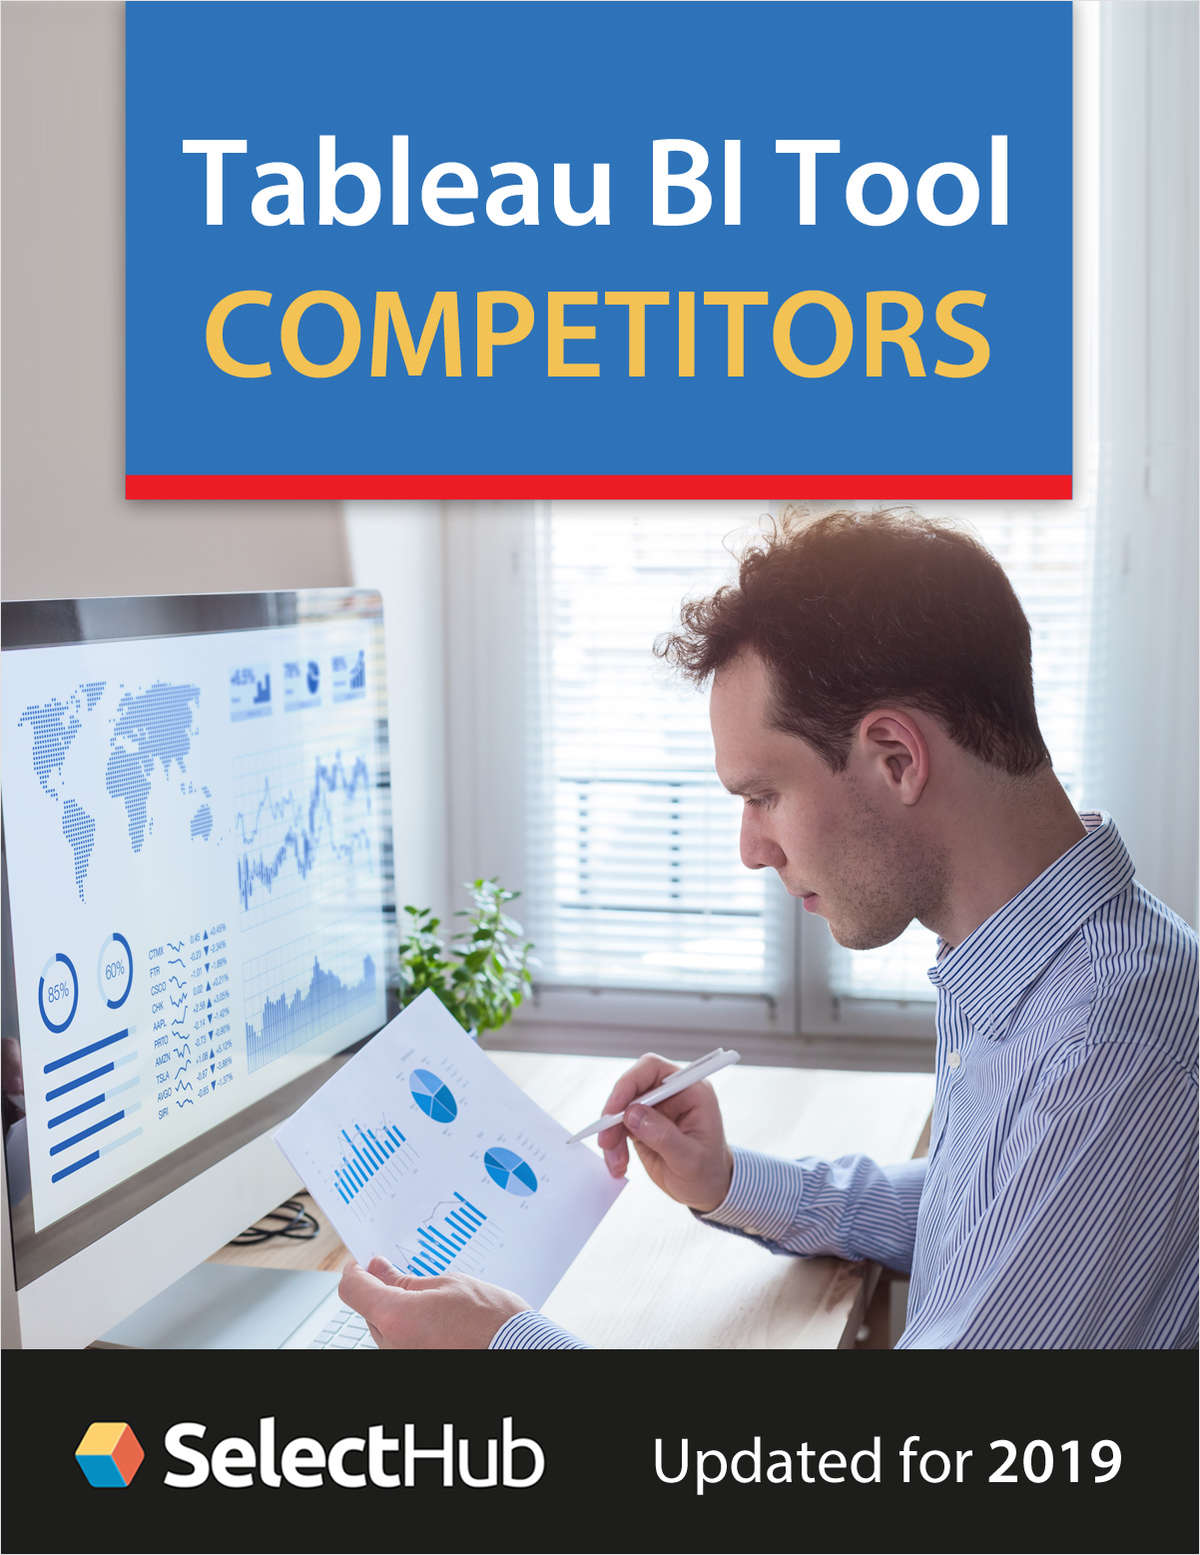 Tableau BI Tool Competitors for 2019